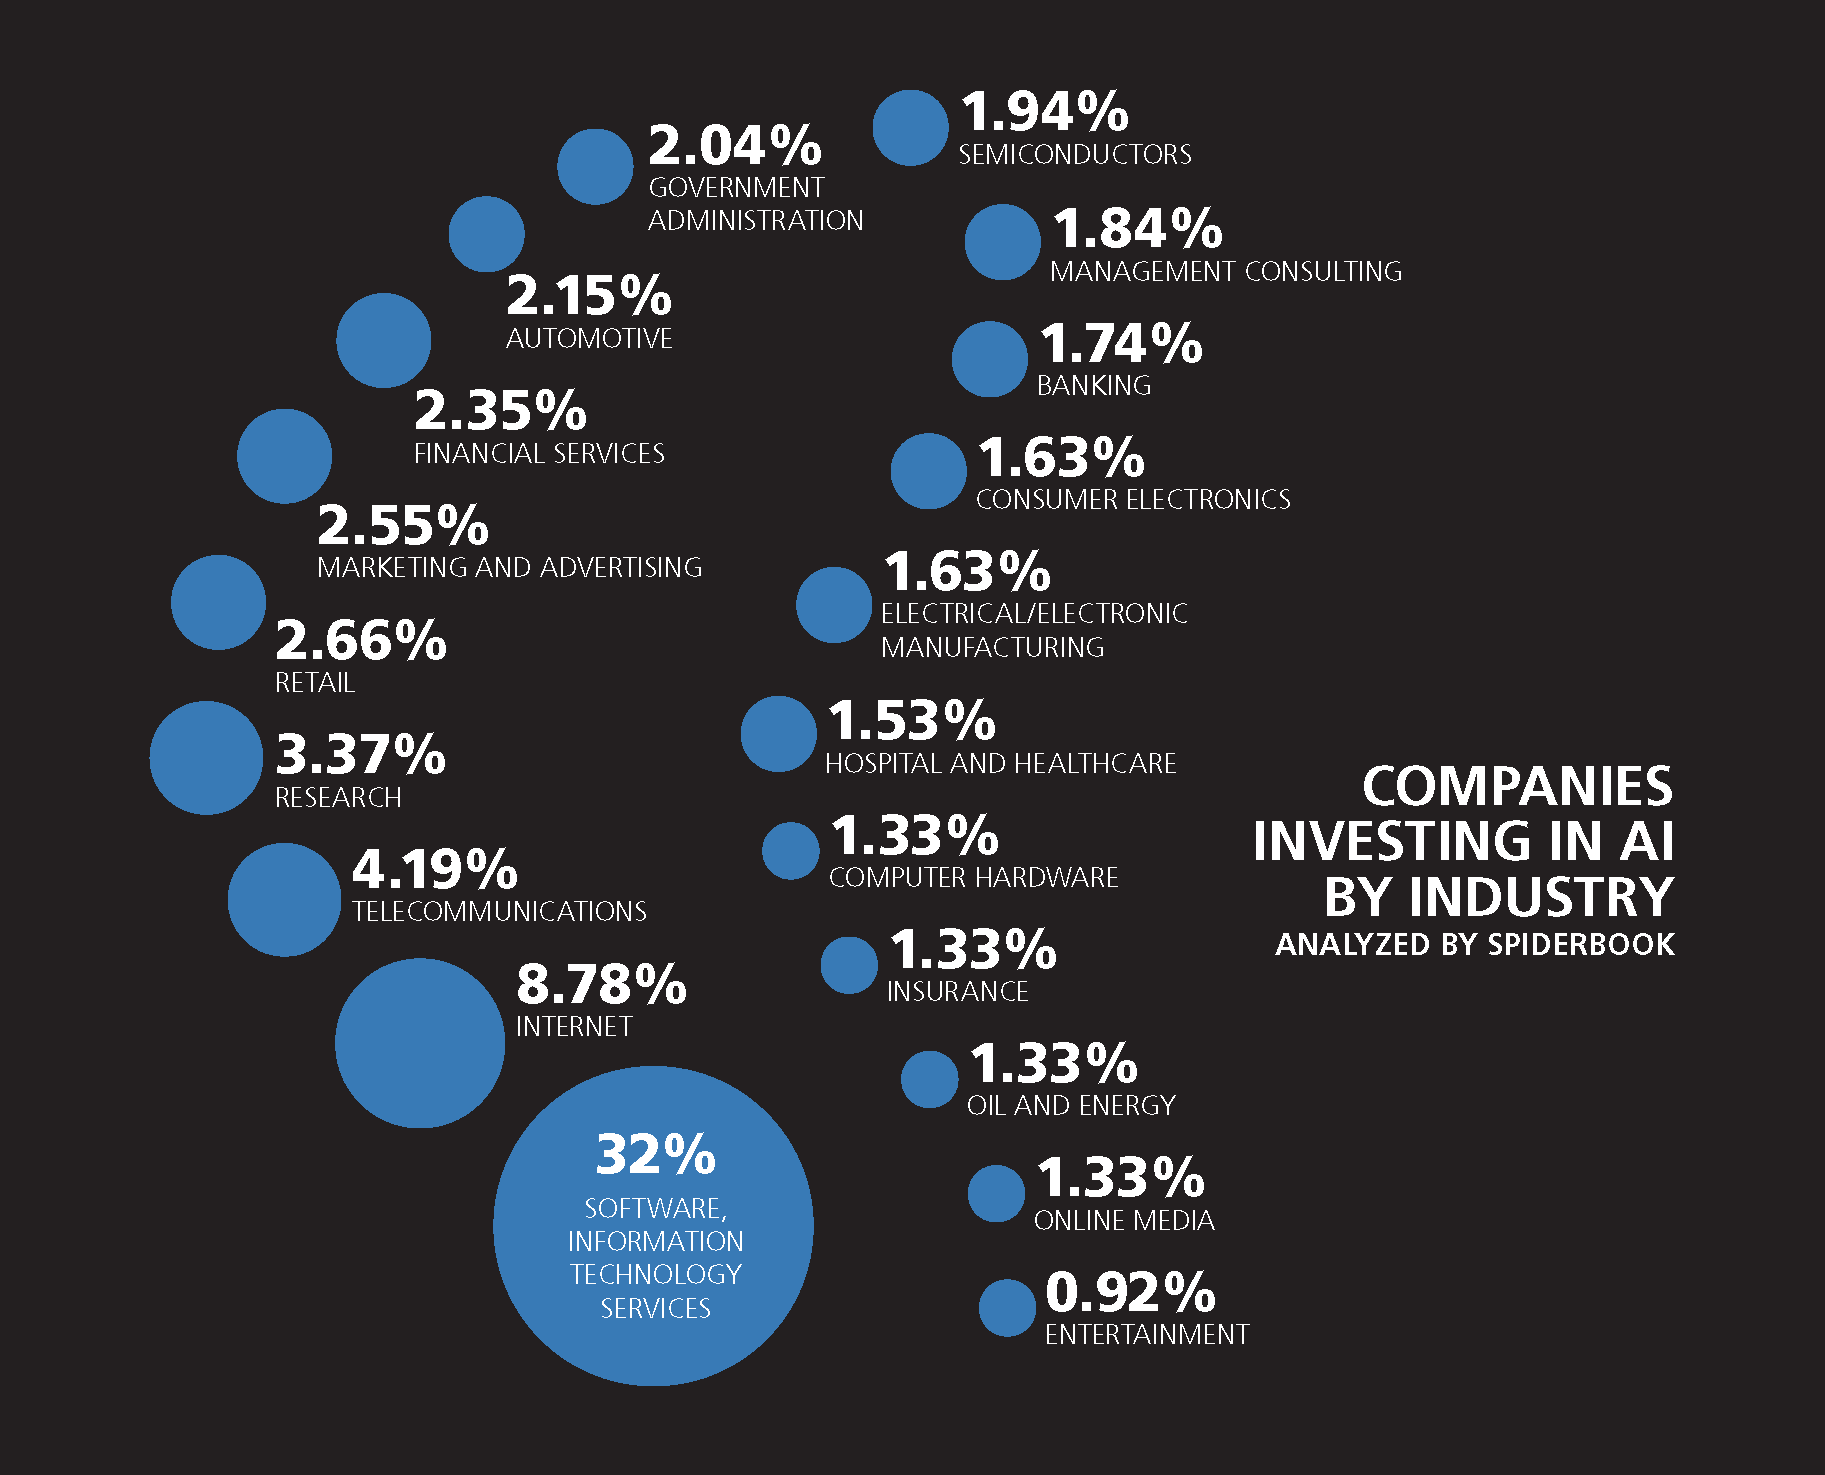 Breakdown of industries investing in AI